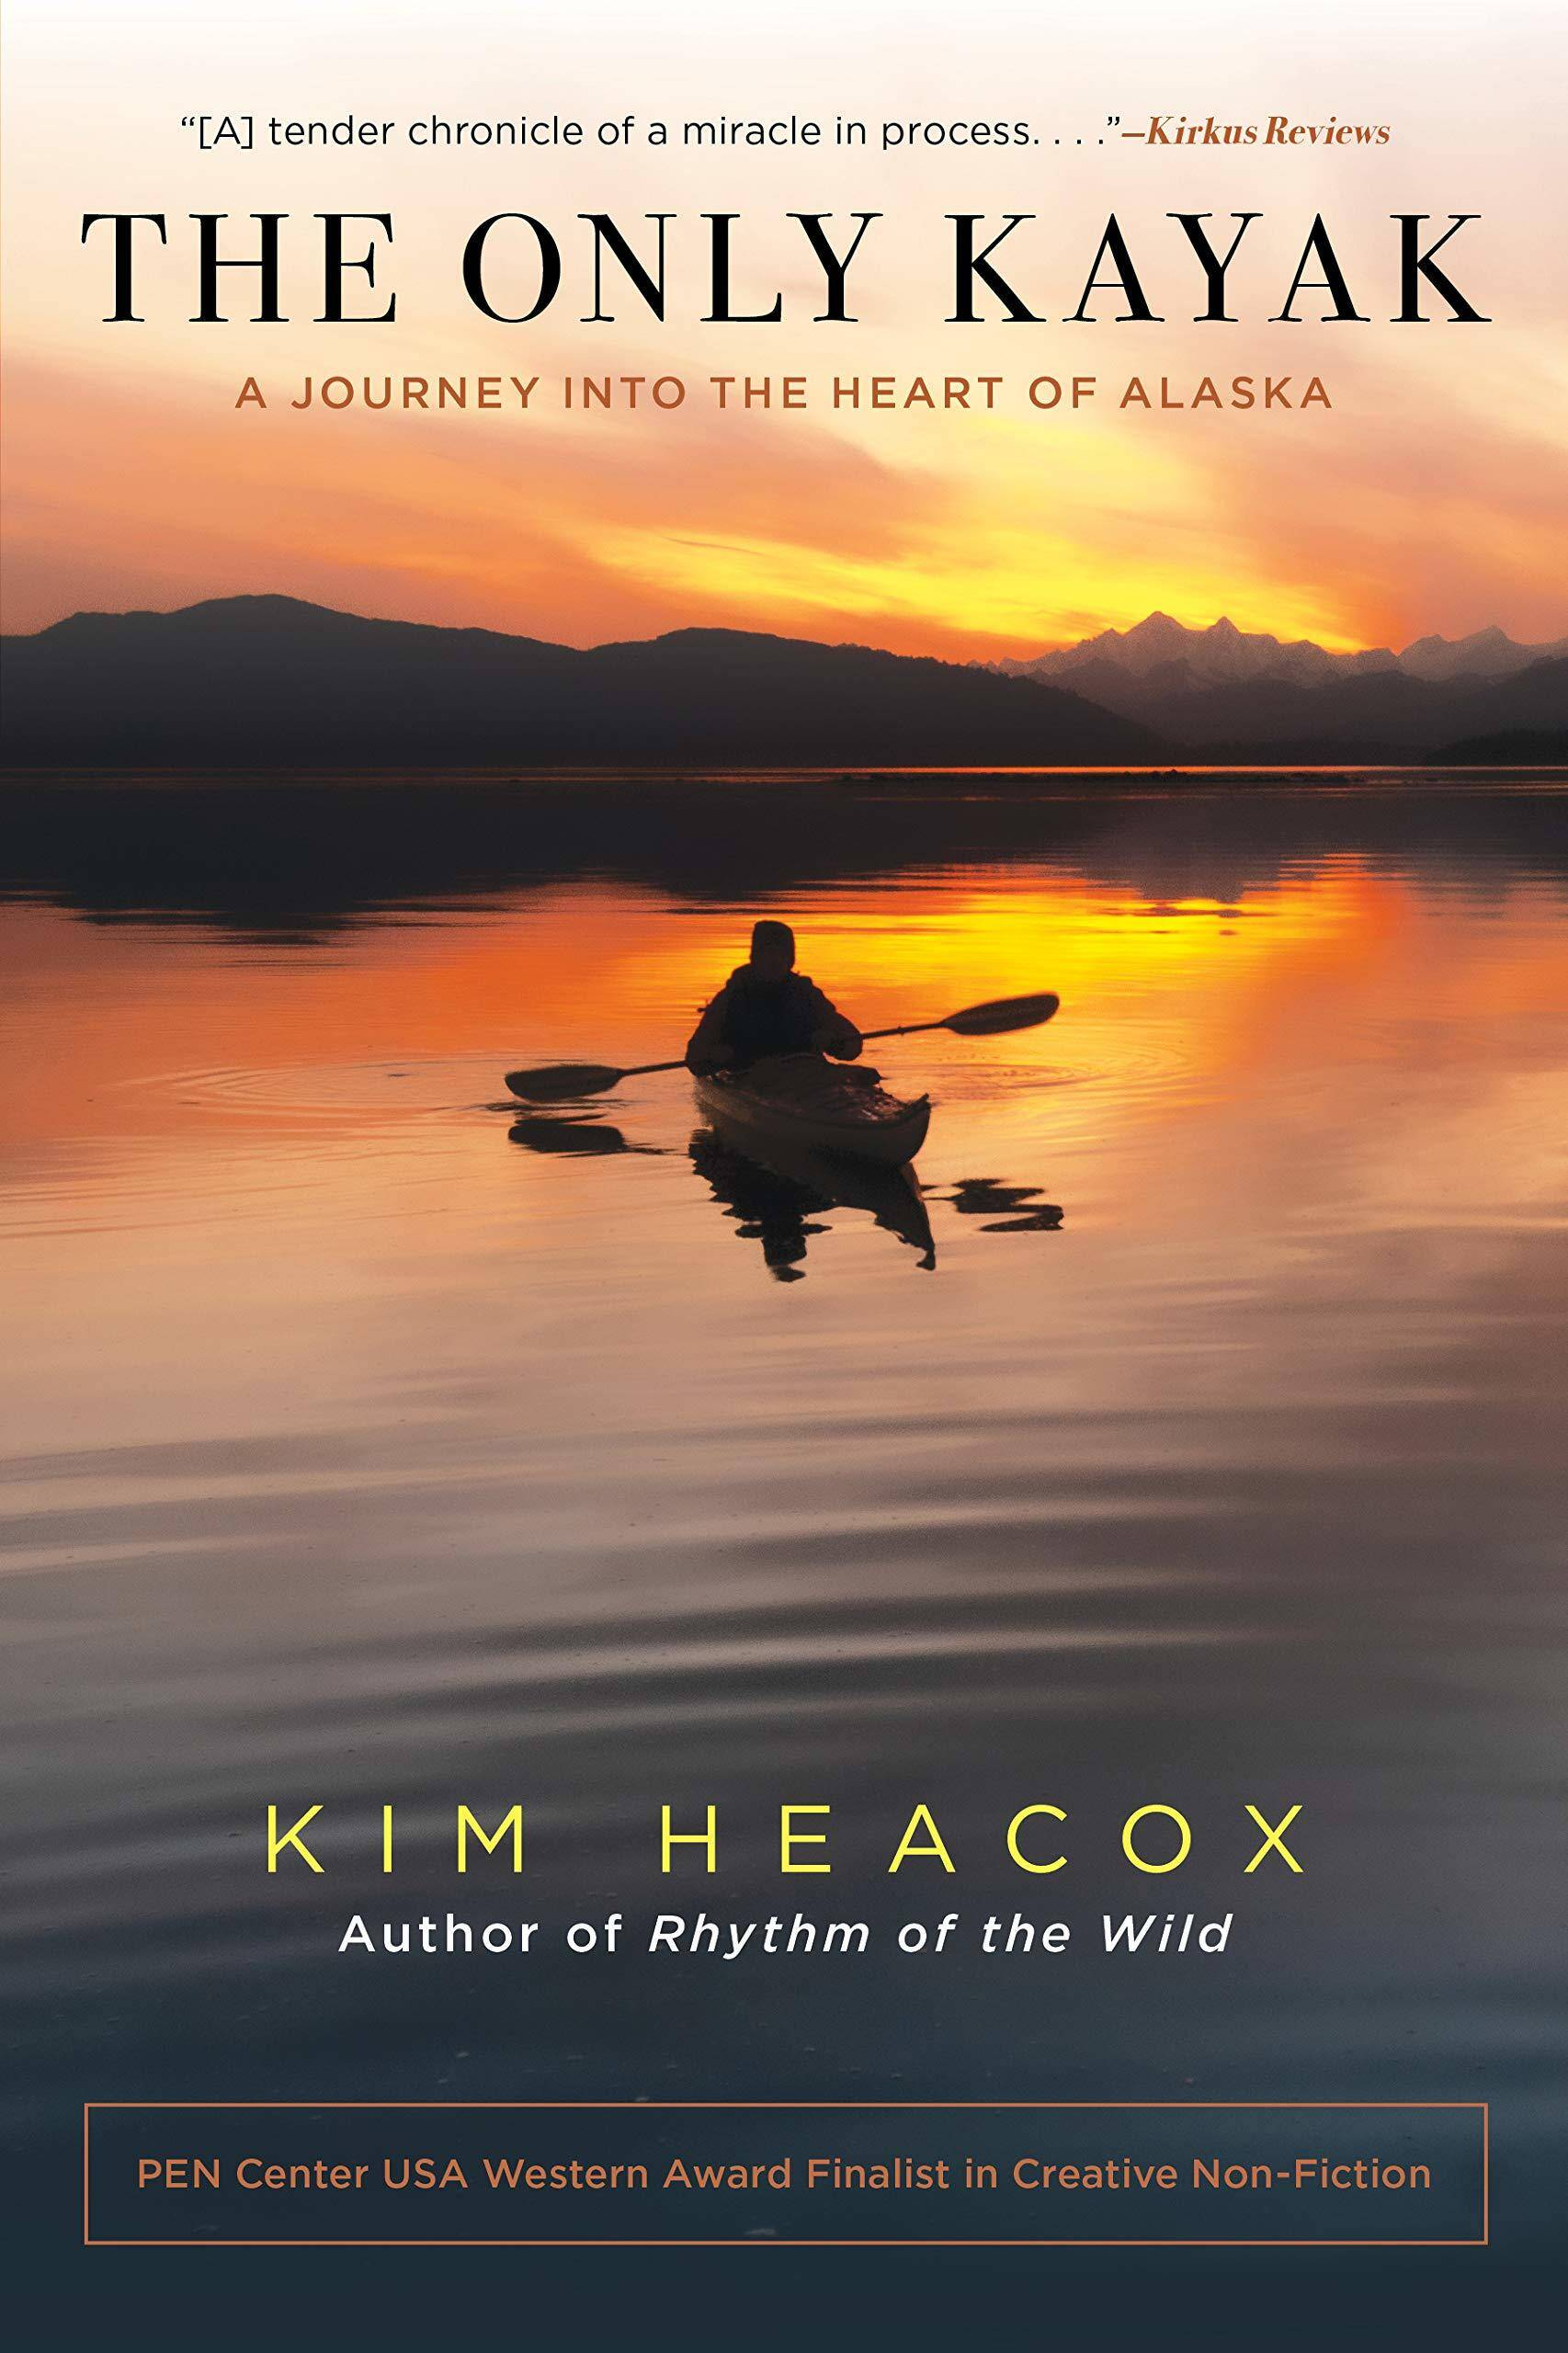 The Only Kayak (book cover)